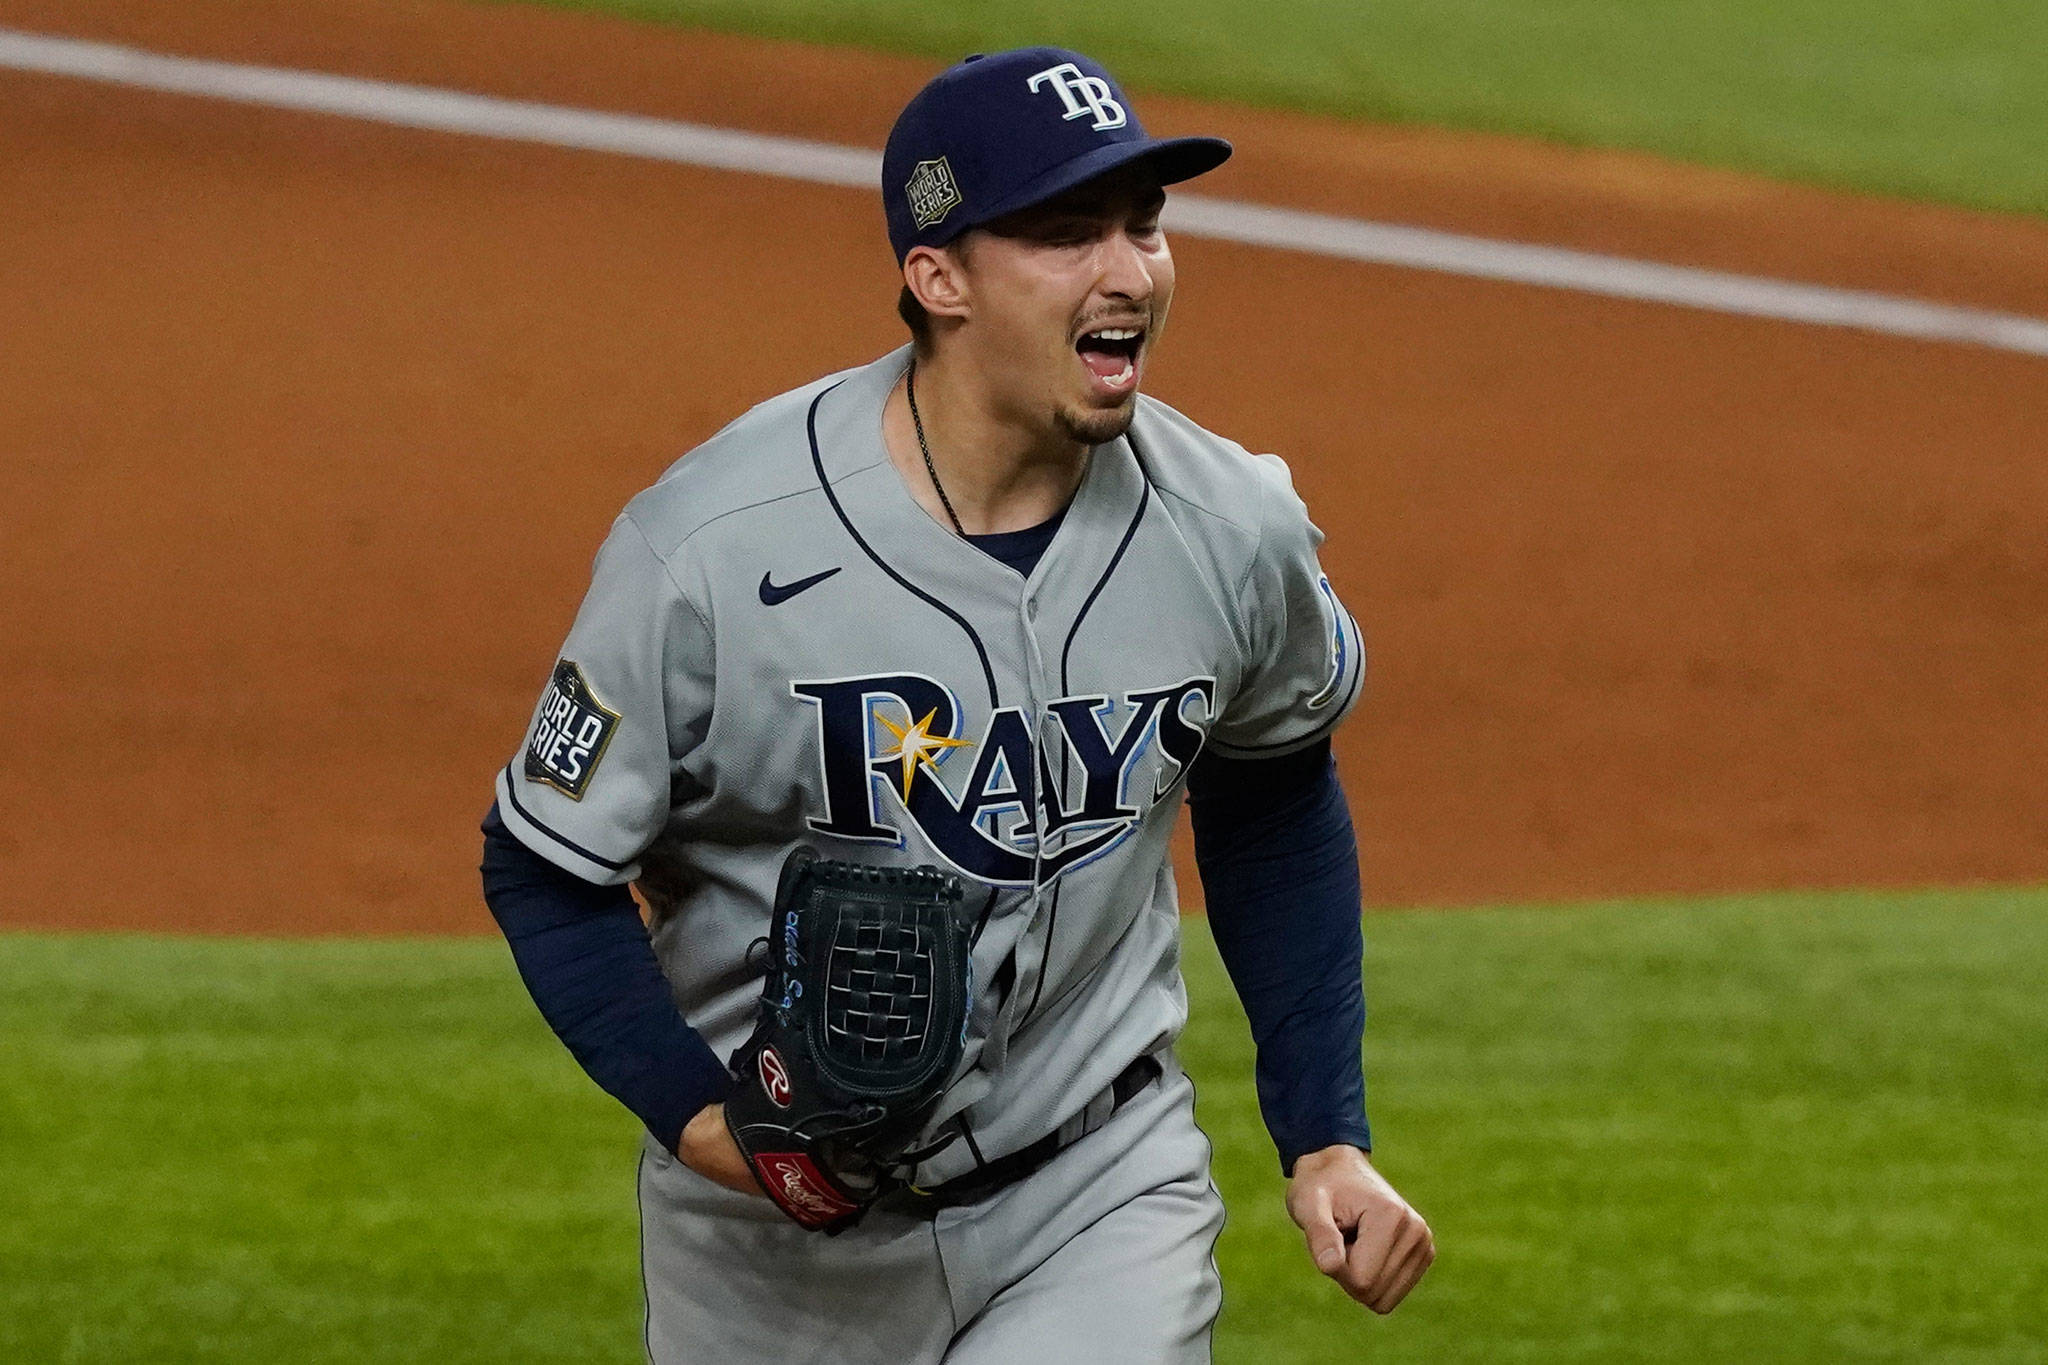 Rays starting pitcher Blake Snell, a Shorewood High School graduate, celebrates after striking out the side during the fourth inning of Game 6 of the World Series against the Dodgers on Oct. 27, 2020, in Arlington, Texas. (AP Photo/Tony Gutierrez)